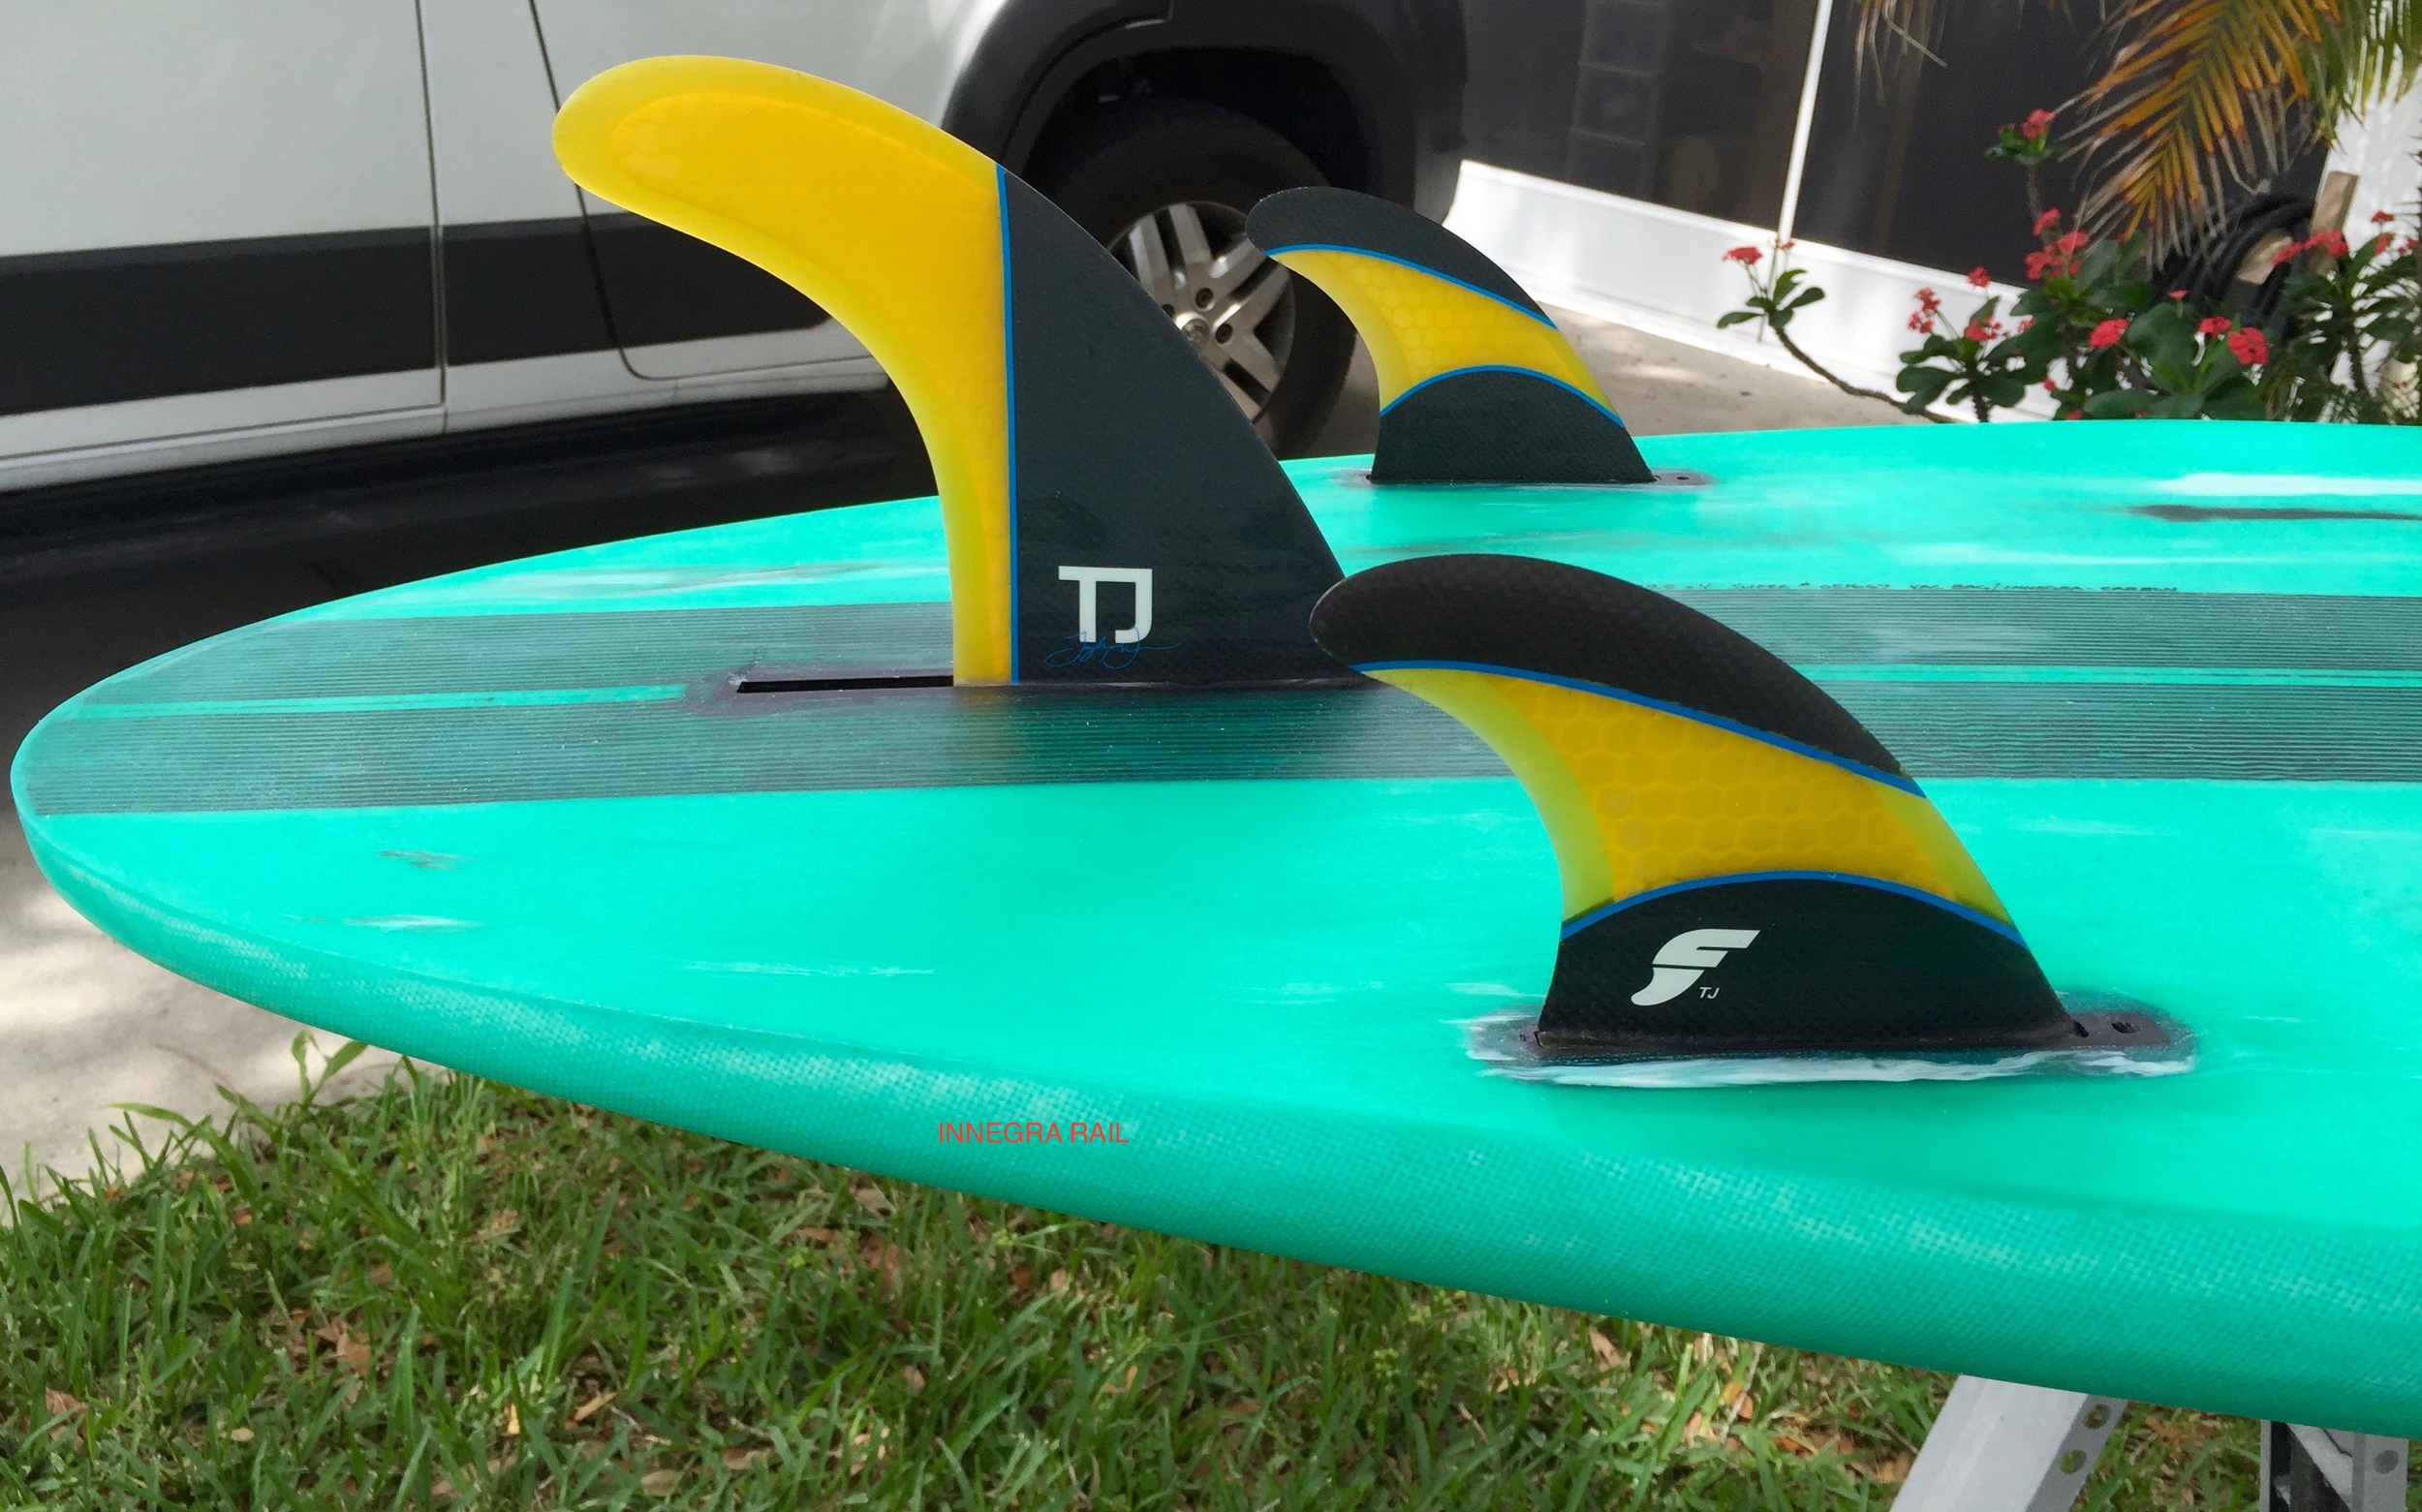 My longboards come setup with the Taylor Jensen set of premium Futures fins.